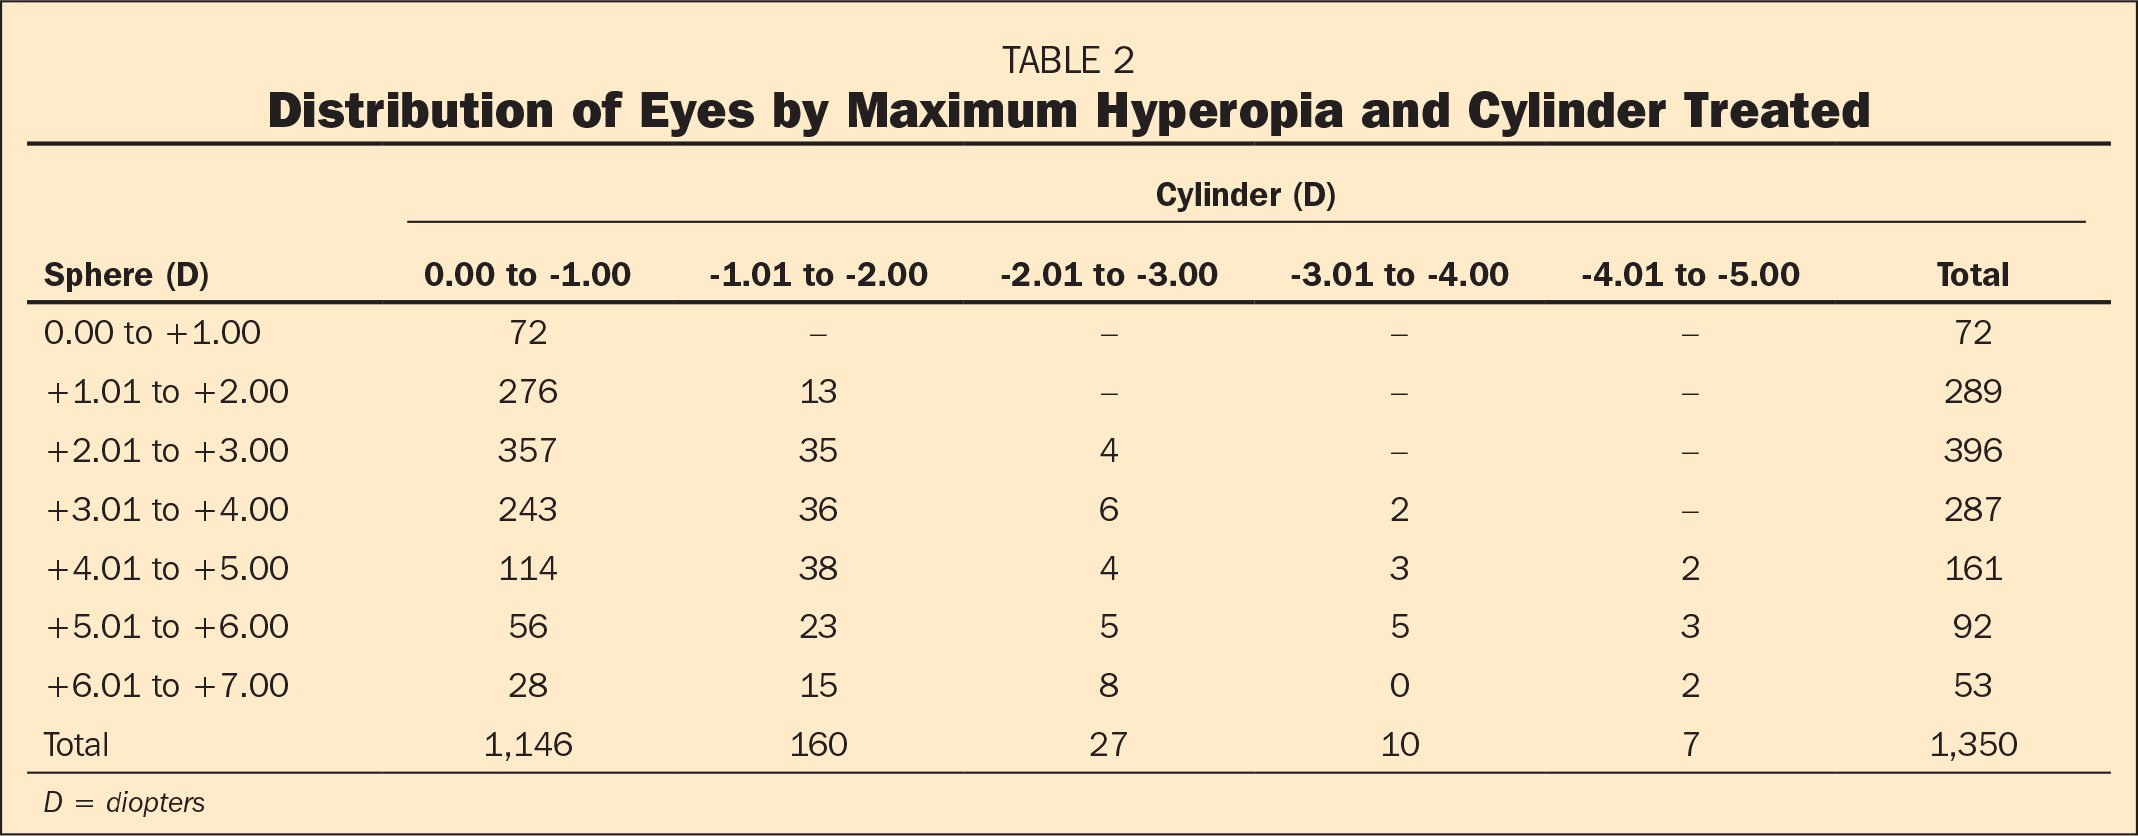 Distribution of Eyes by Maximum Hyperopia and Cylinder Treated